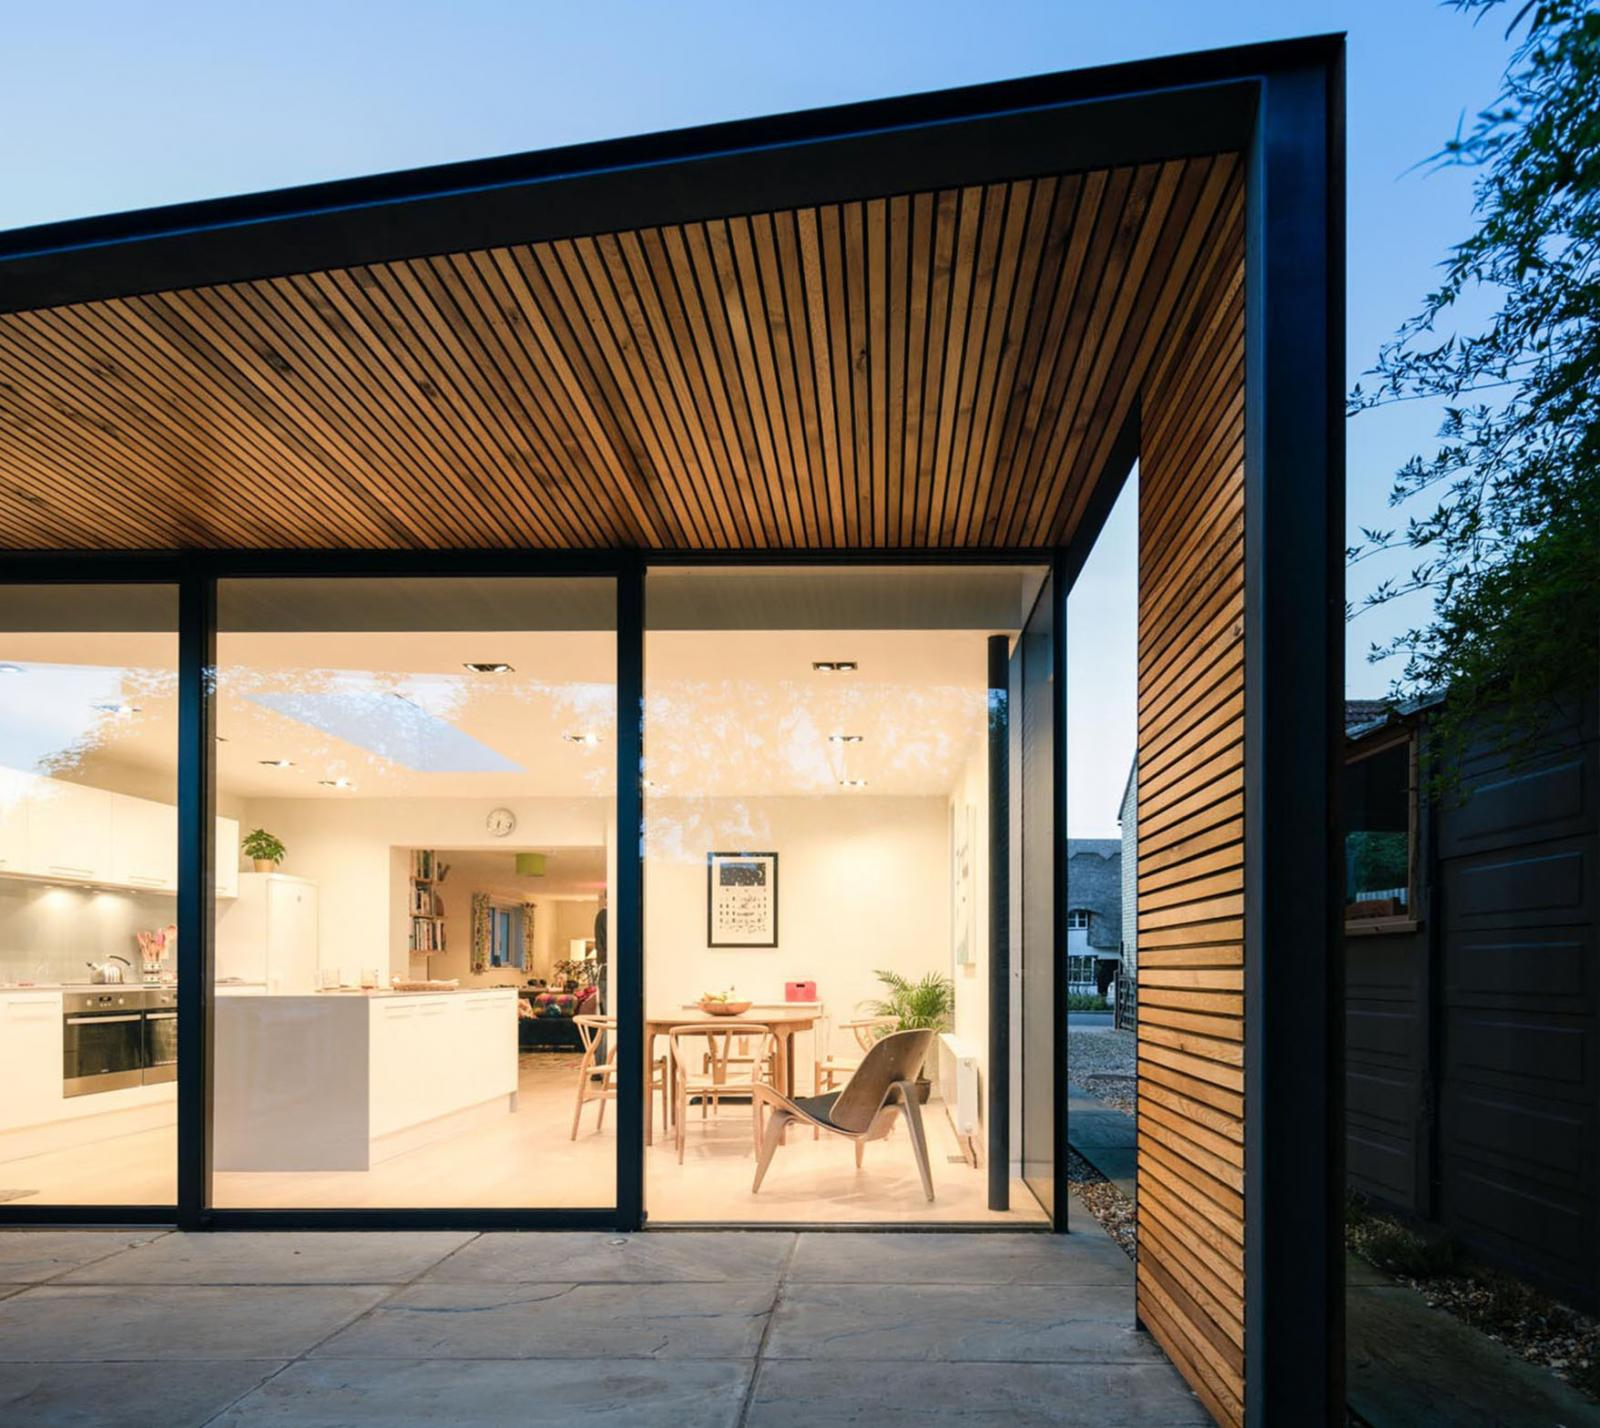 Lode house is a RIBA award-winning project that was conceived, designed and detailed using Sketchup.